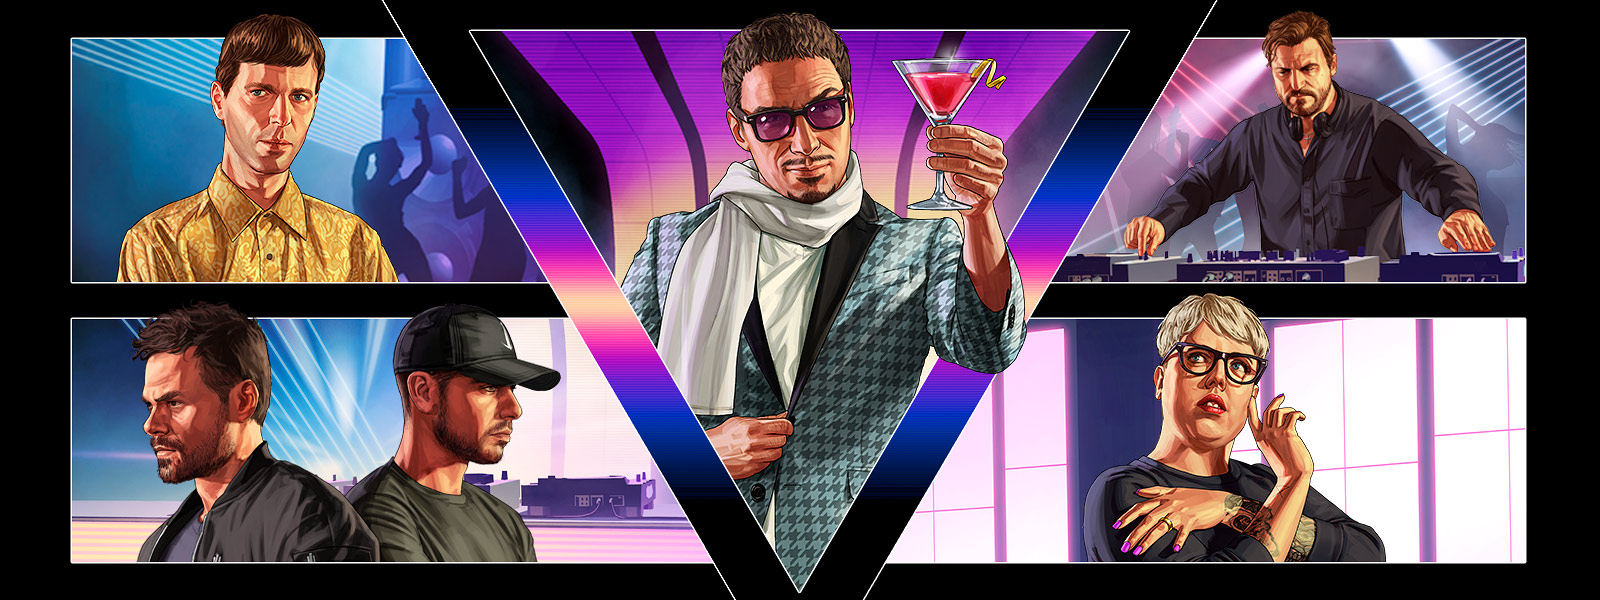 Grand Theft Auto Online: After Hours, Collage of multiple characters in a nightclub